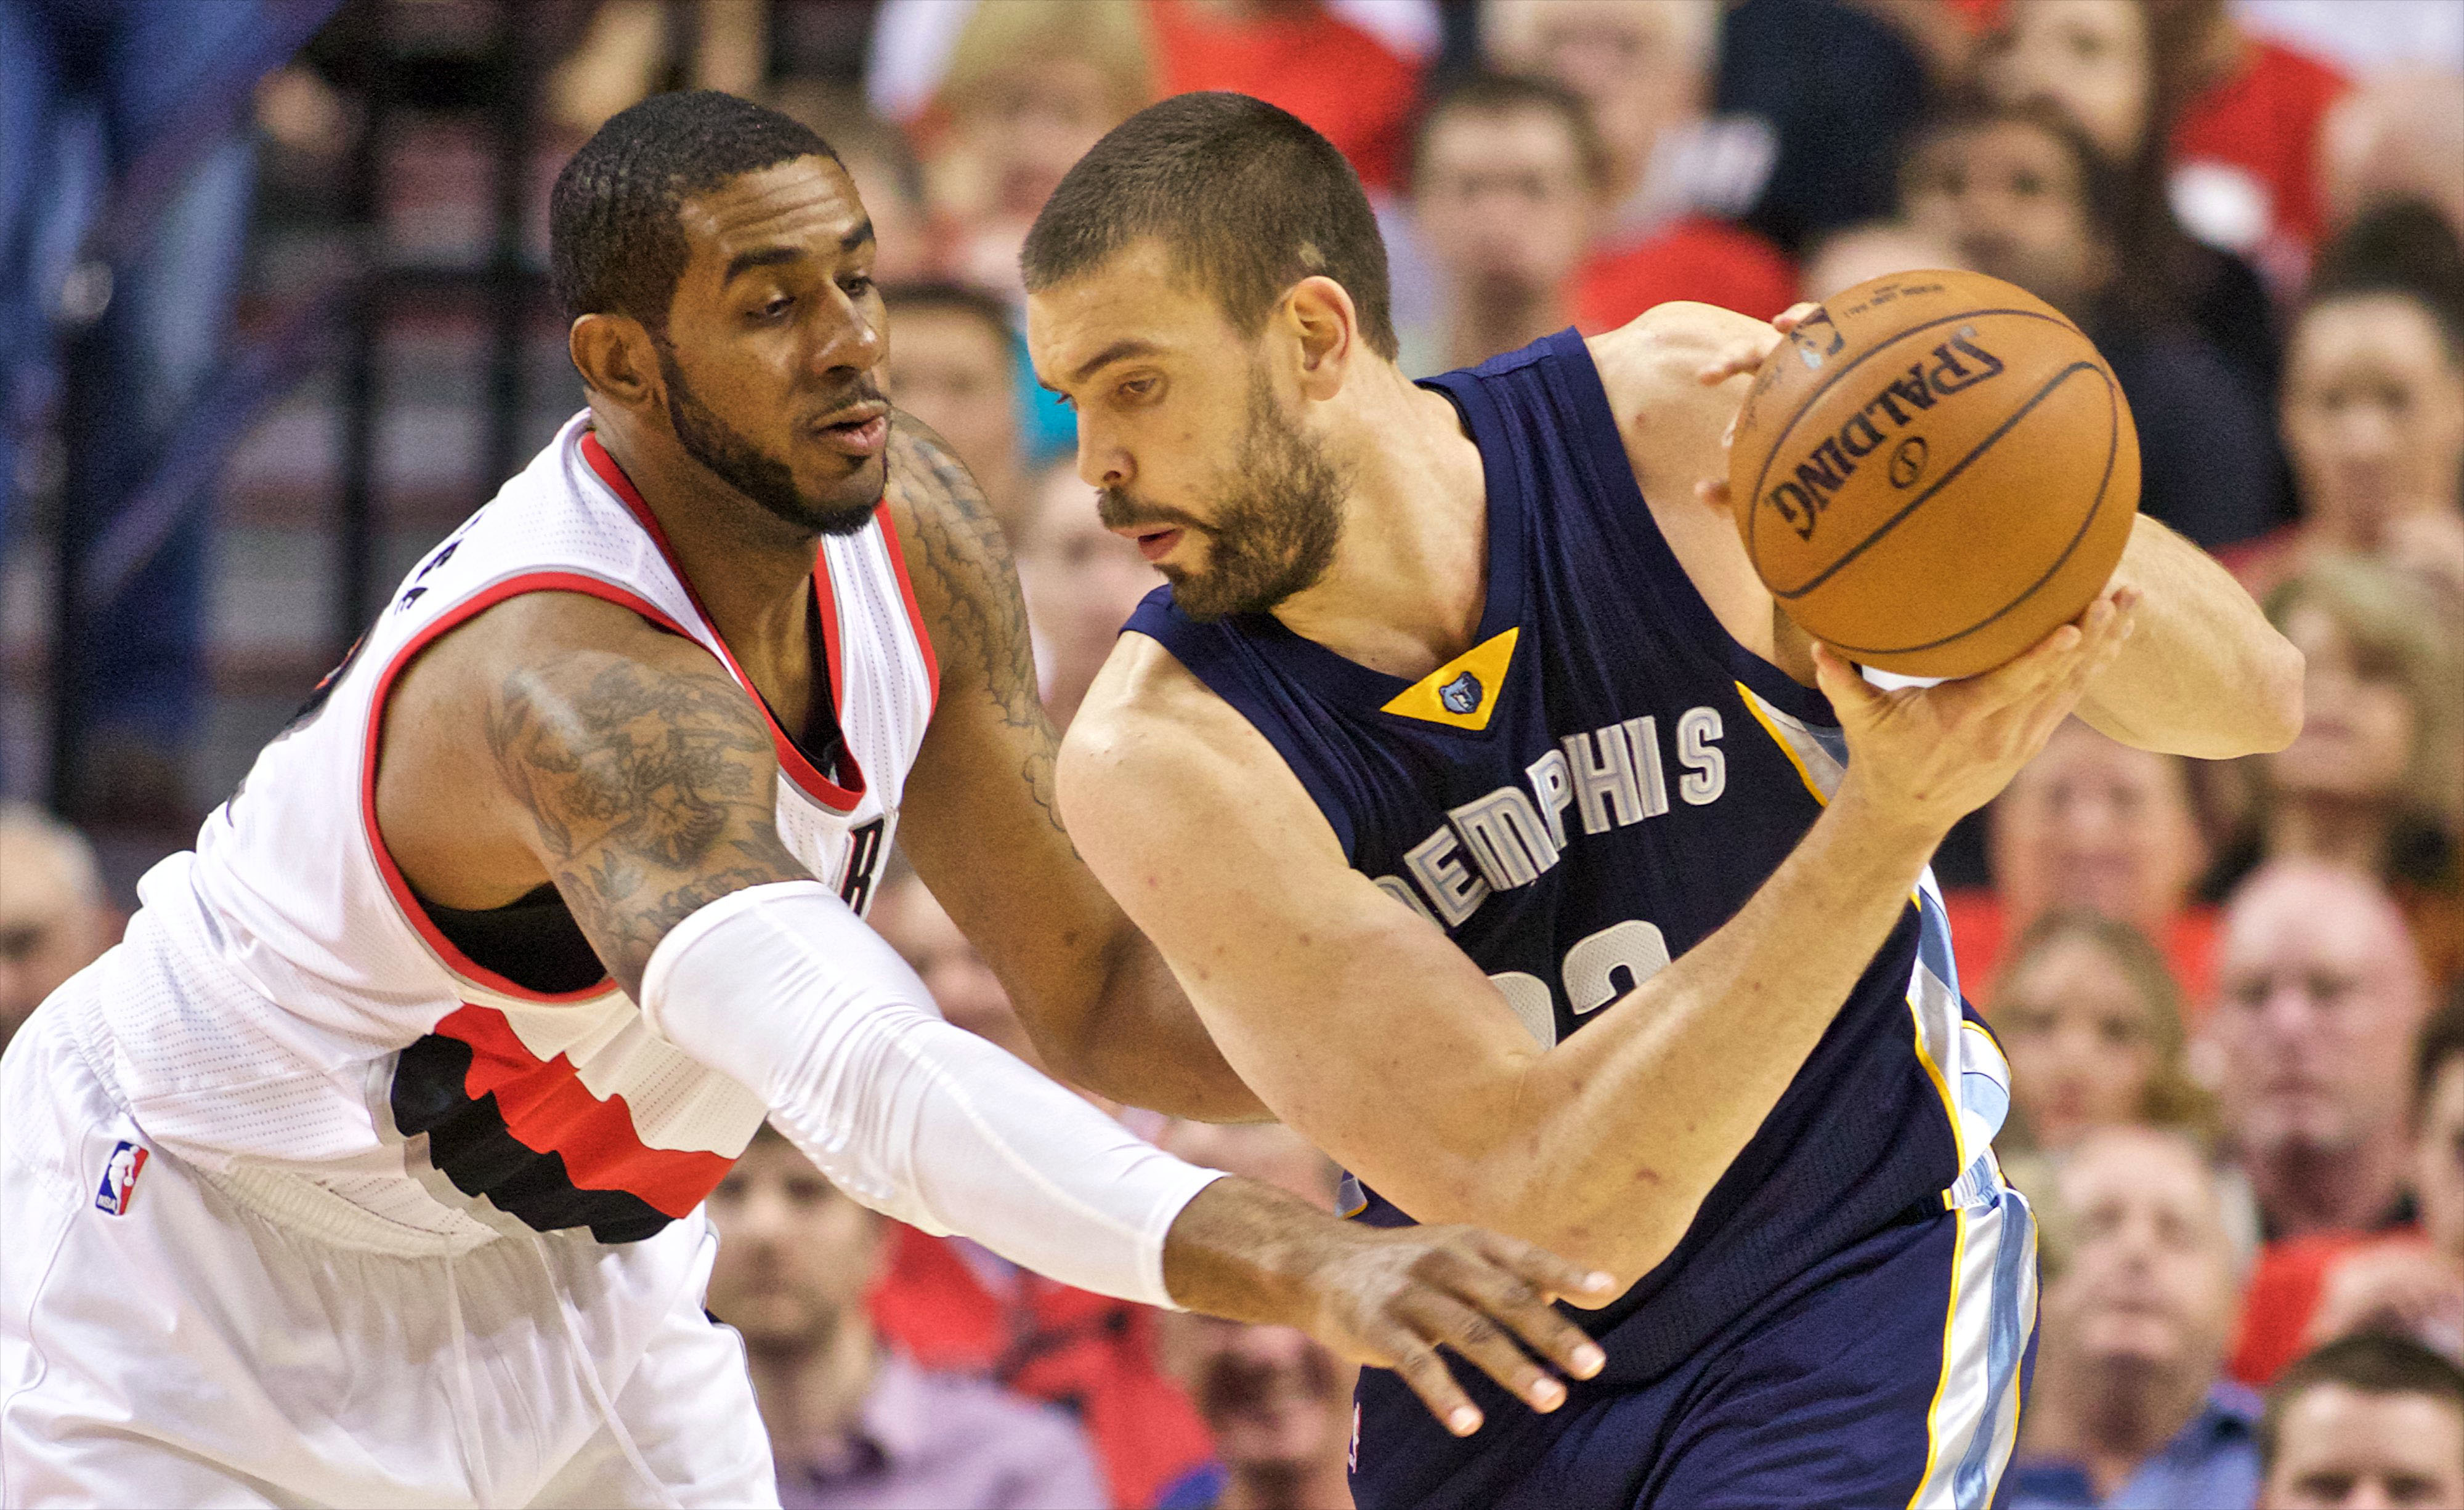 Apr 27, 2015; Portland, OR, USA; Memphis Grizzlies center Marc Gasol (33) posts up against Portland Trail Blazers forward LaMarcus Aldridge (12) during the first quarter in game four of the first round of the NBA Playoffs at the Moda Center. Mandatory Credit: Craig Mitchelldyer-USA TODAY Sports